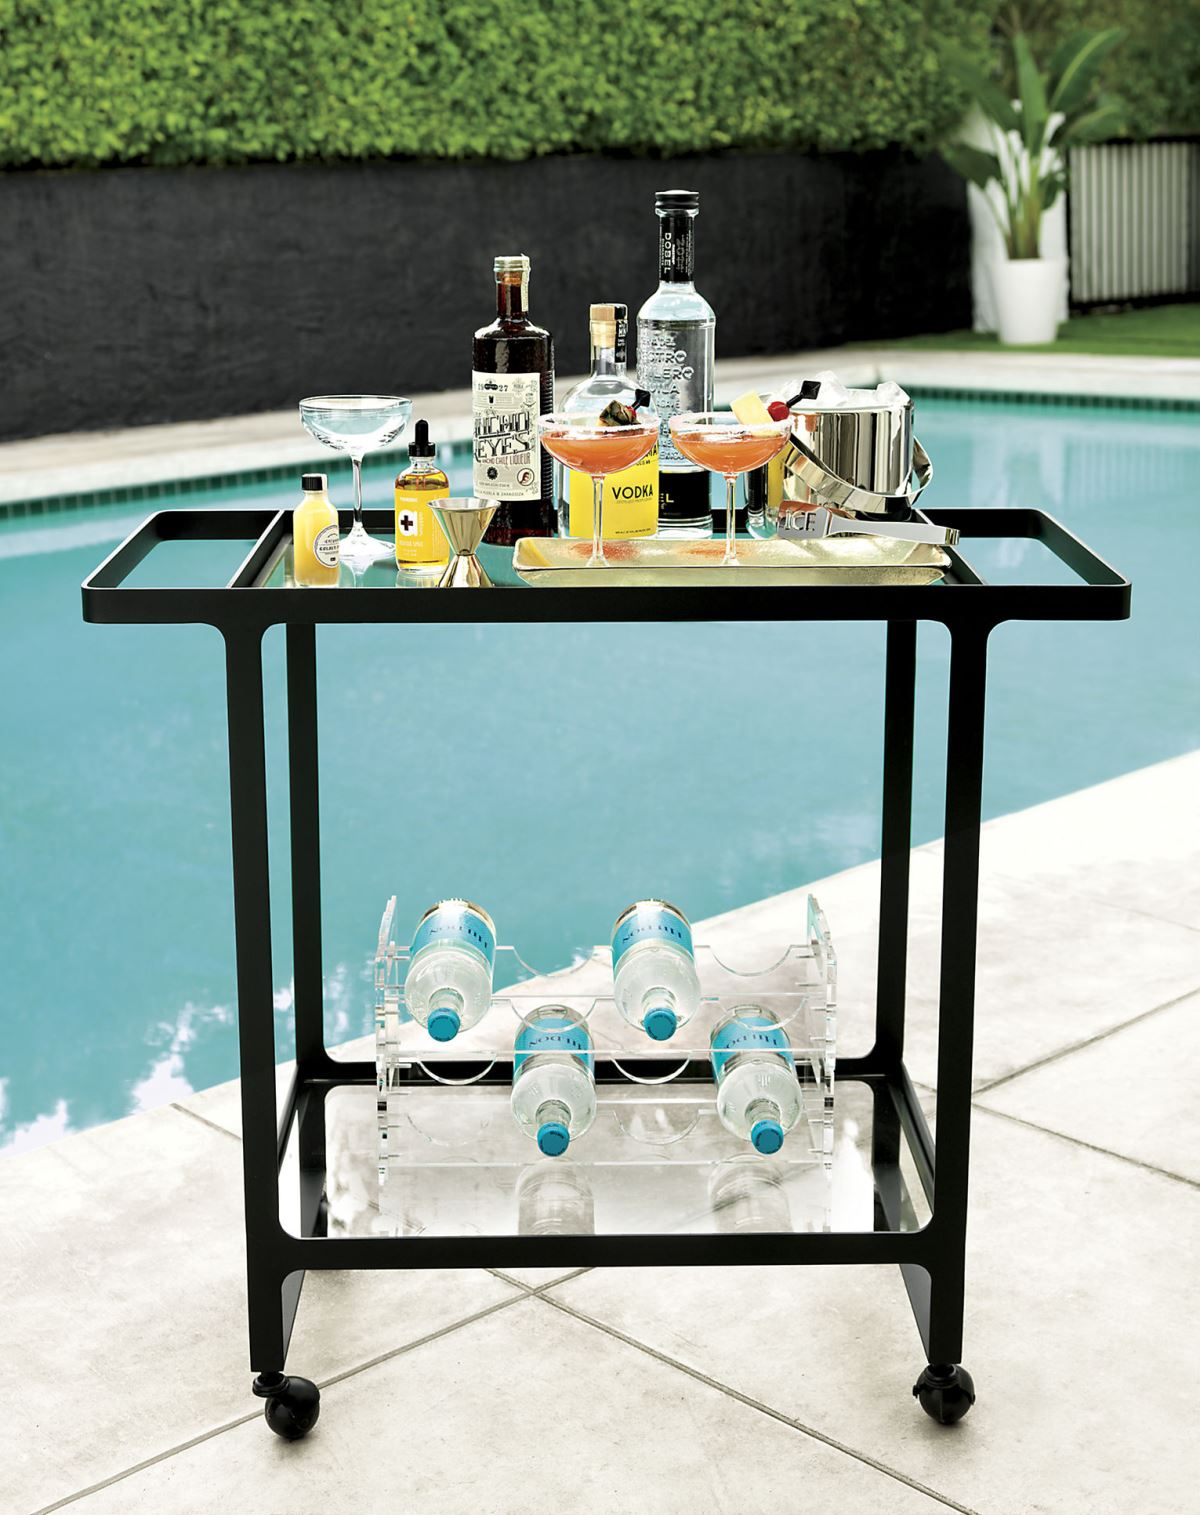 Outdoor bar cart from CB2